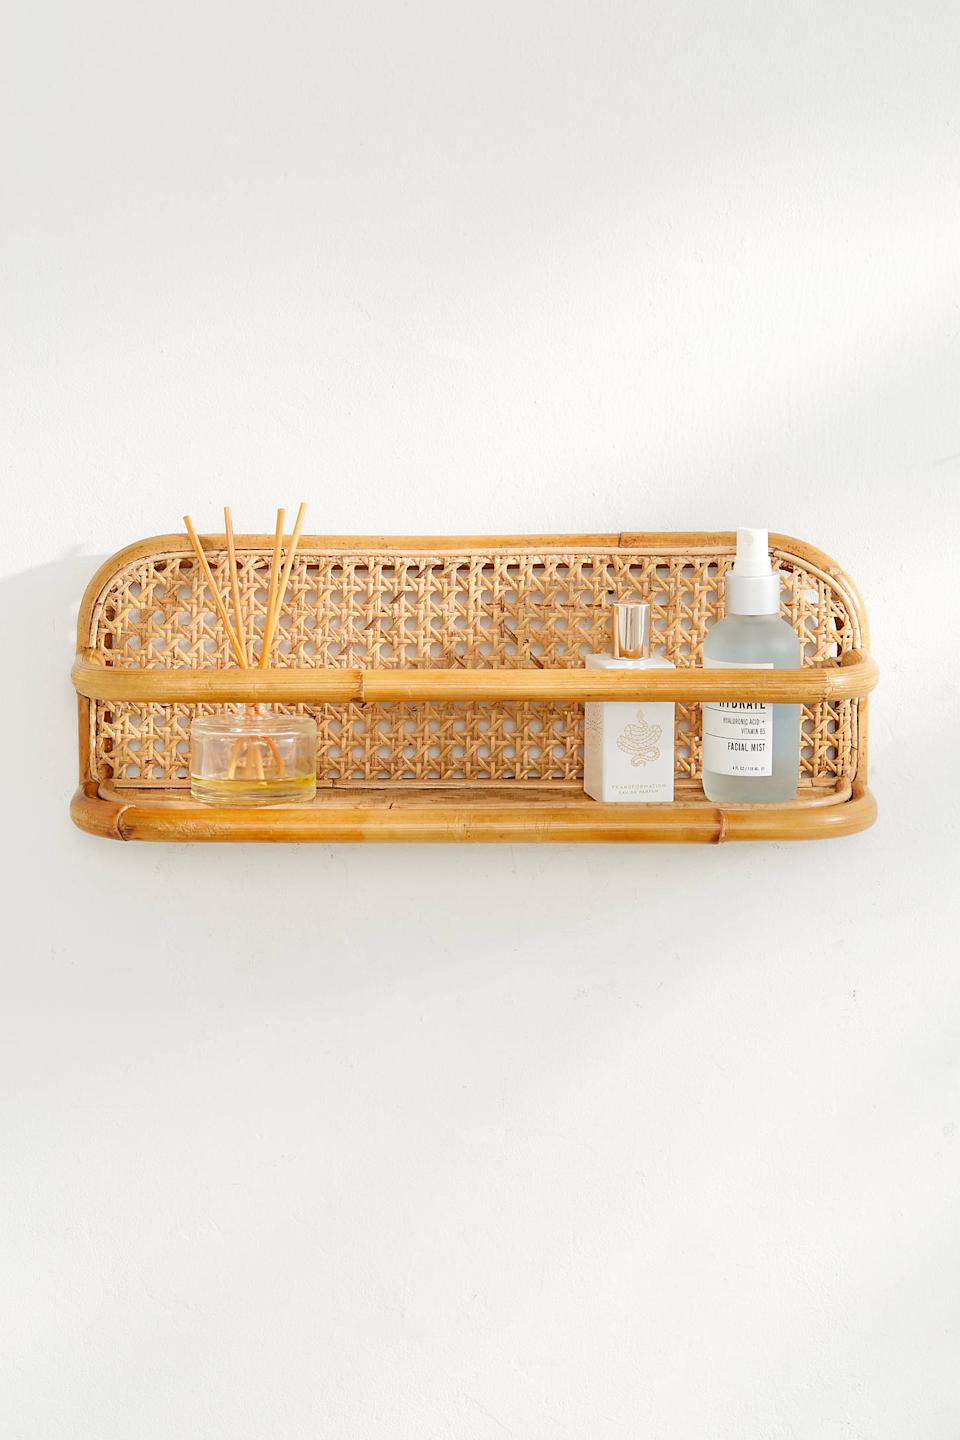 "Bamboo and rattan always make a space look more lived-in. This easy shelf is ideal for showing off your favorite trinkets. <br><br><strong><em><a href=""https://www.urbanoutfitters.com/furniture"" rel=""nofollow noopener"" target=""_blank"" data-ylk=""slk:Shop Urban Outfitters"" class=""link rapid-noclick-resp"">Shop Urban Outfitters</a></em></strong><br><br><strong>Urban Outfitters</strong> Marte Display Wall Shelf, $, available at <a href=""https://go.skimresources.com/?id=30283X879131&url=https%3A%2F%2Fwww.urbanoutfitters.com%2Fshop%2Fmarte-display-wall-shelf%3F"" rel=""nofollow noopener"" target=""_blank"" data-ylk=""slk:Urban Outfitters"" class=""link rapid-noclick-resp"">Urban Outfitters</a>"